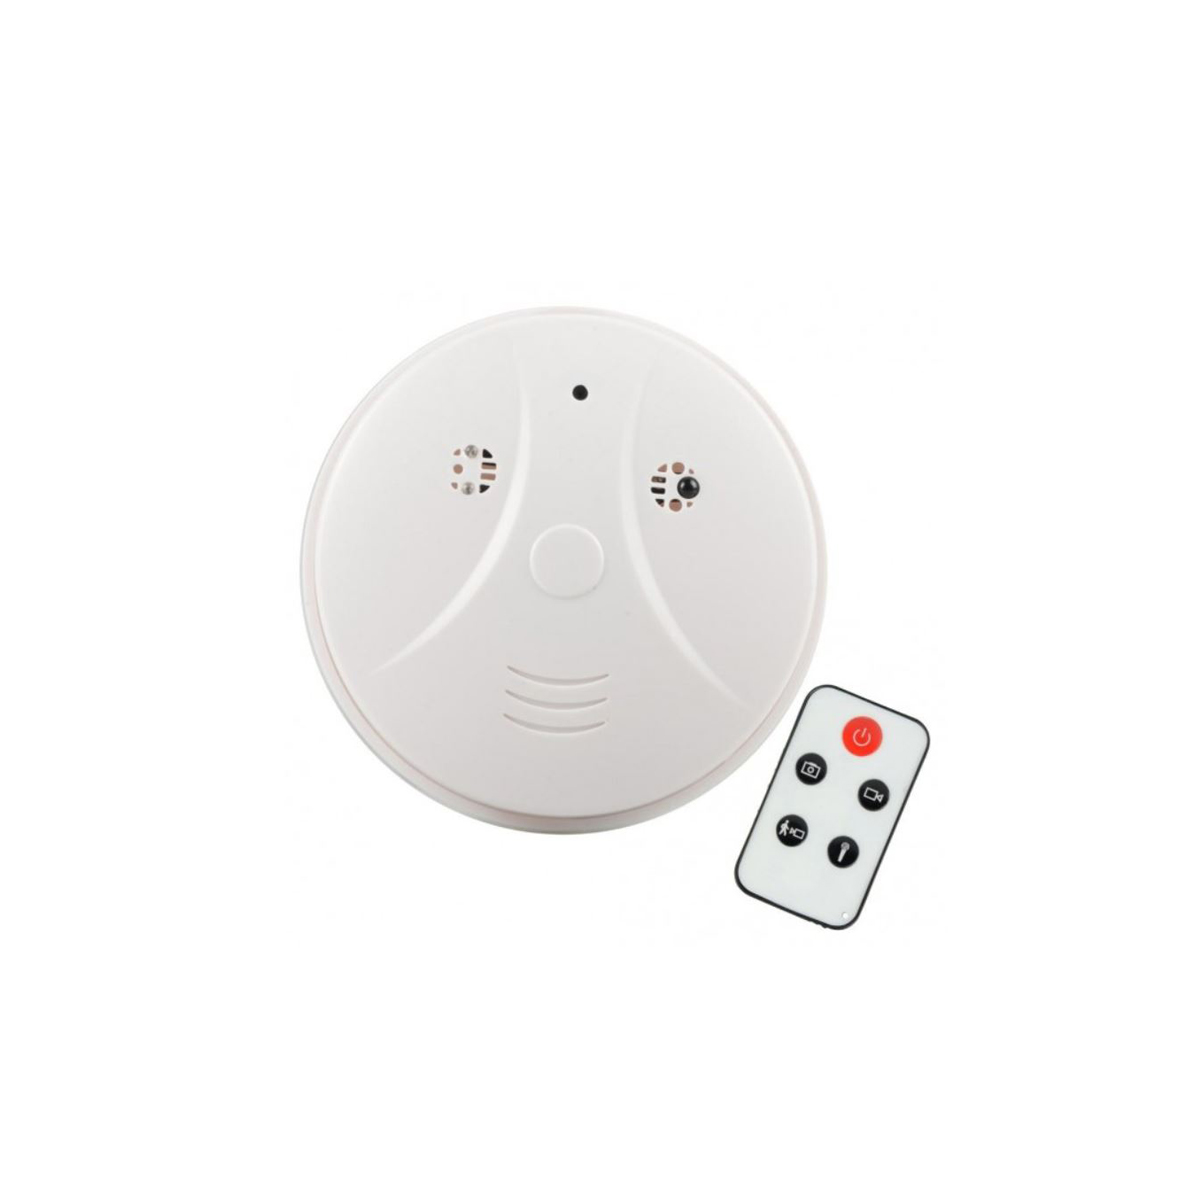 IAG-Smoke-Detector-Hidden-HD-Spy-Camera-3-1200×1200